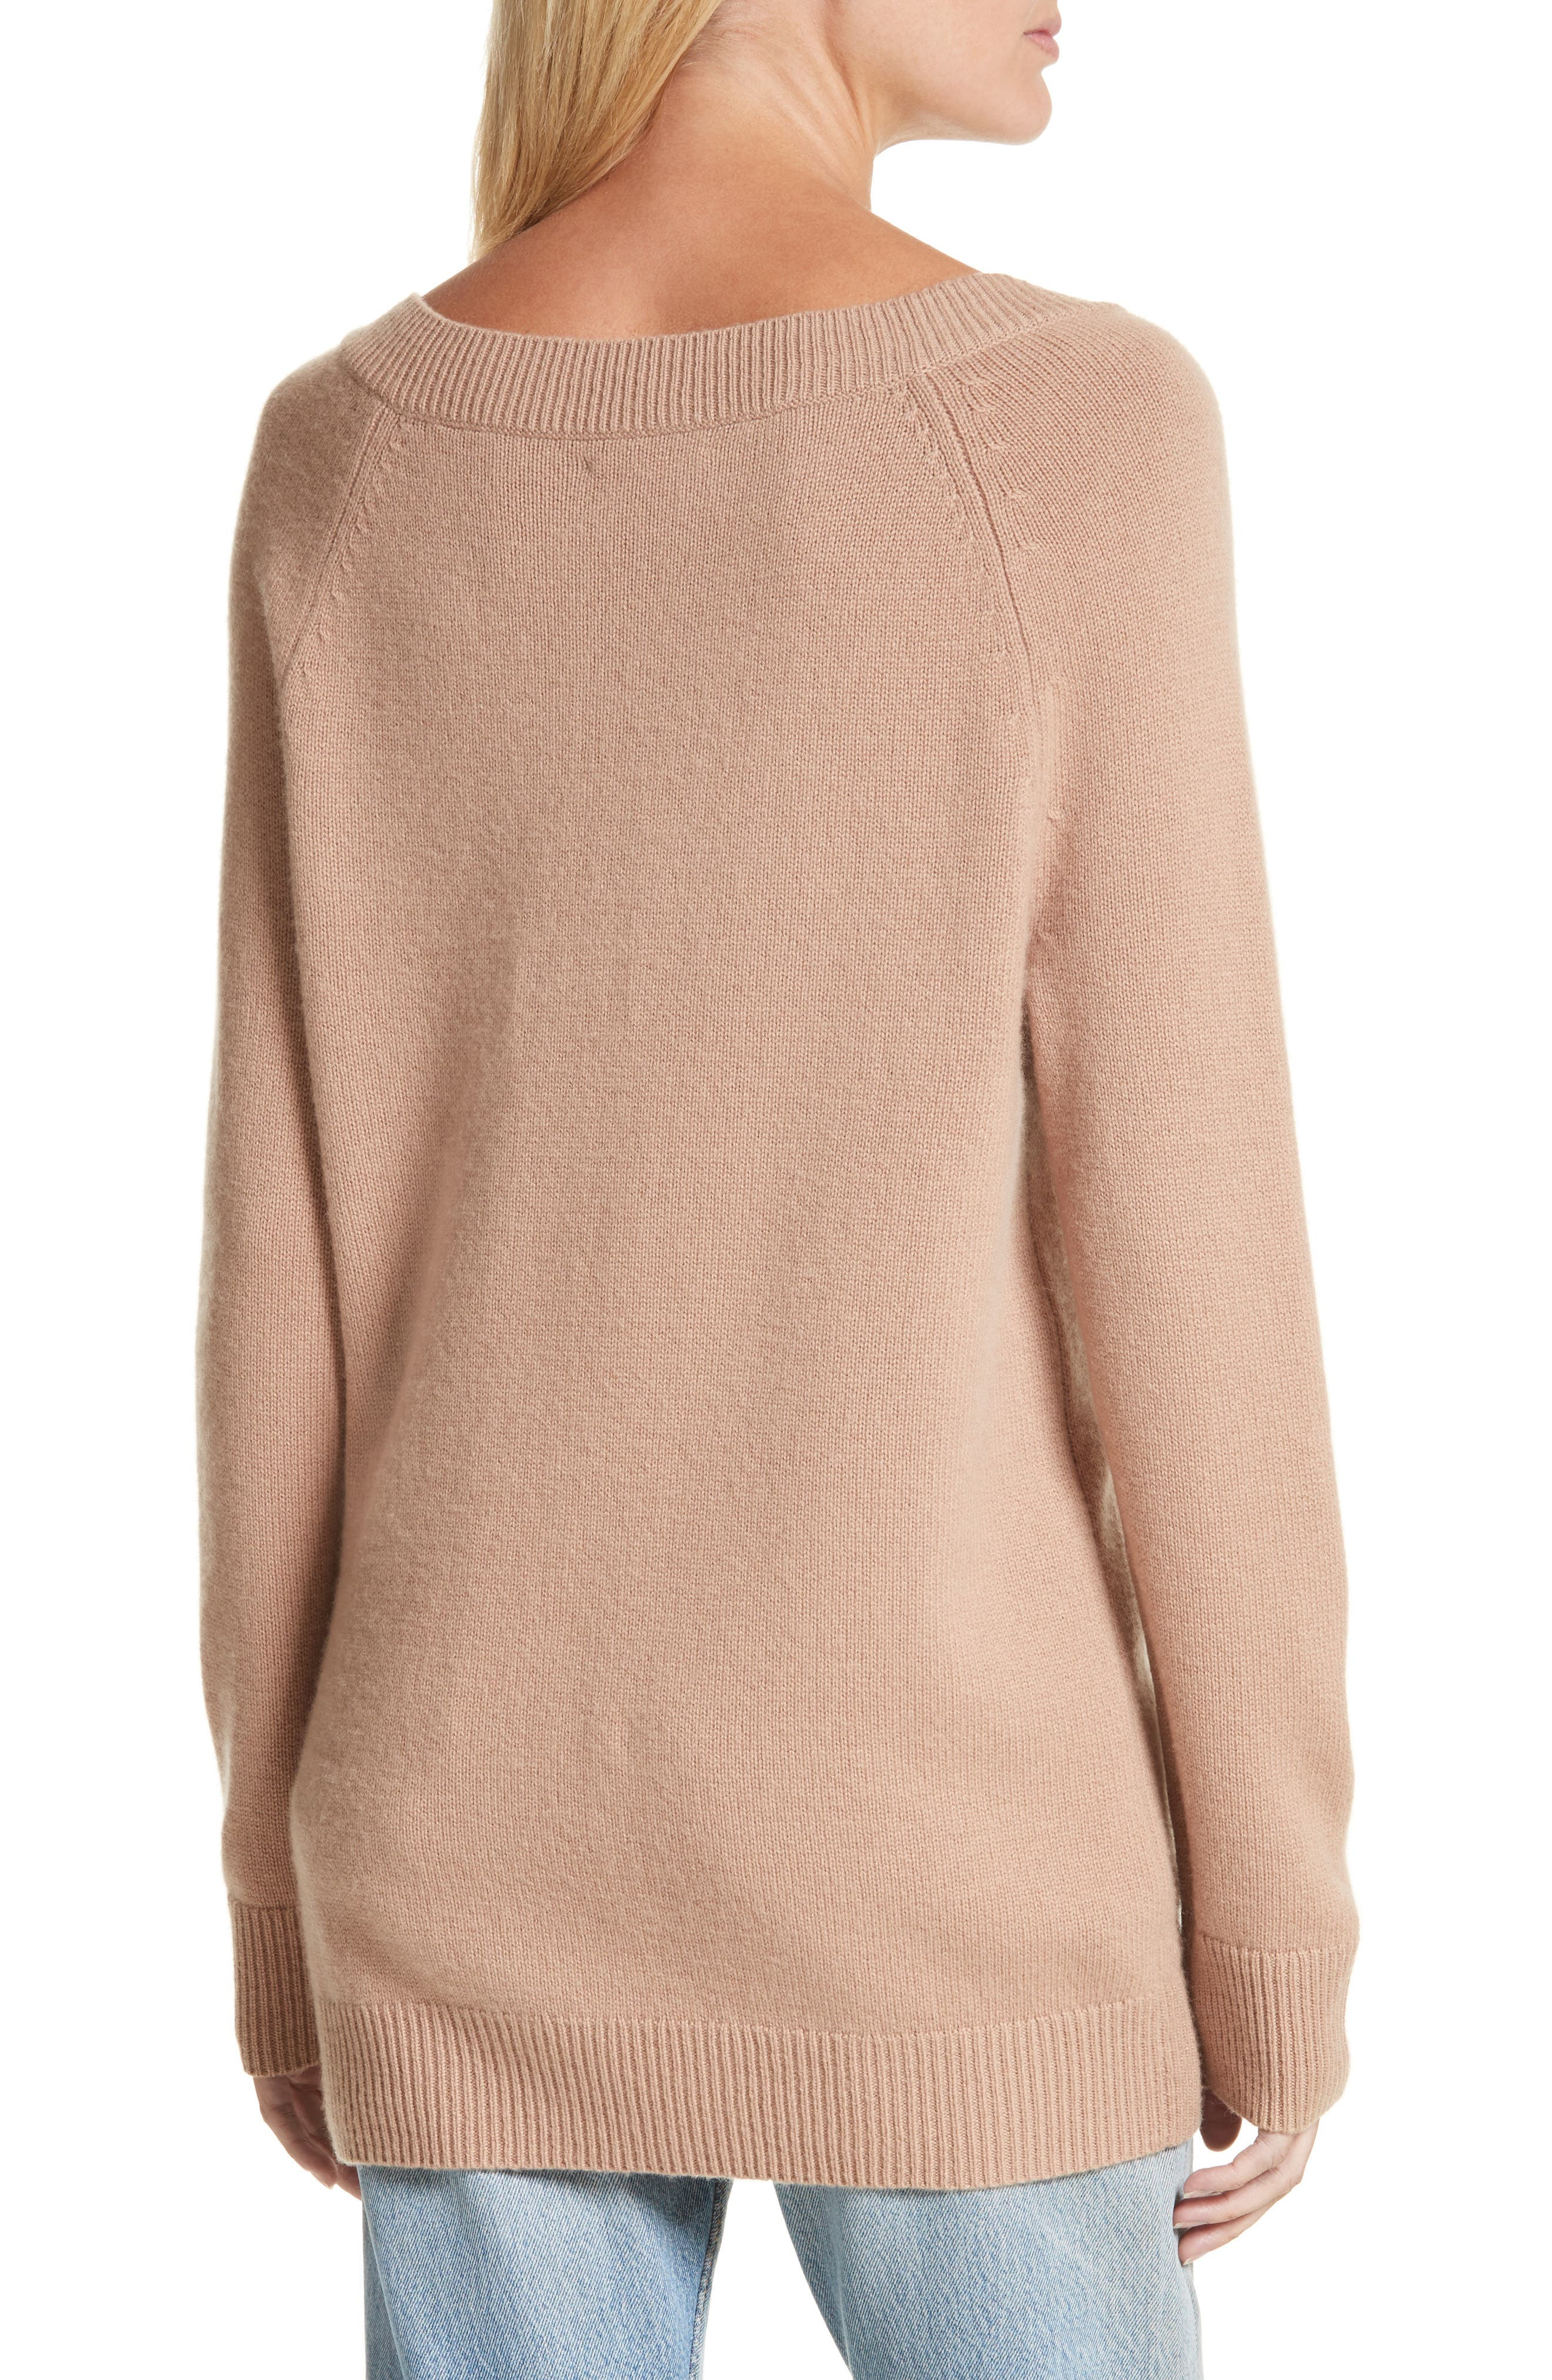 Cody Wool & Cashmere Boatneck Sweater,                             Alternate thumbnail 2, color,                             200